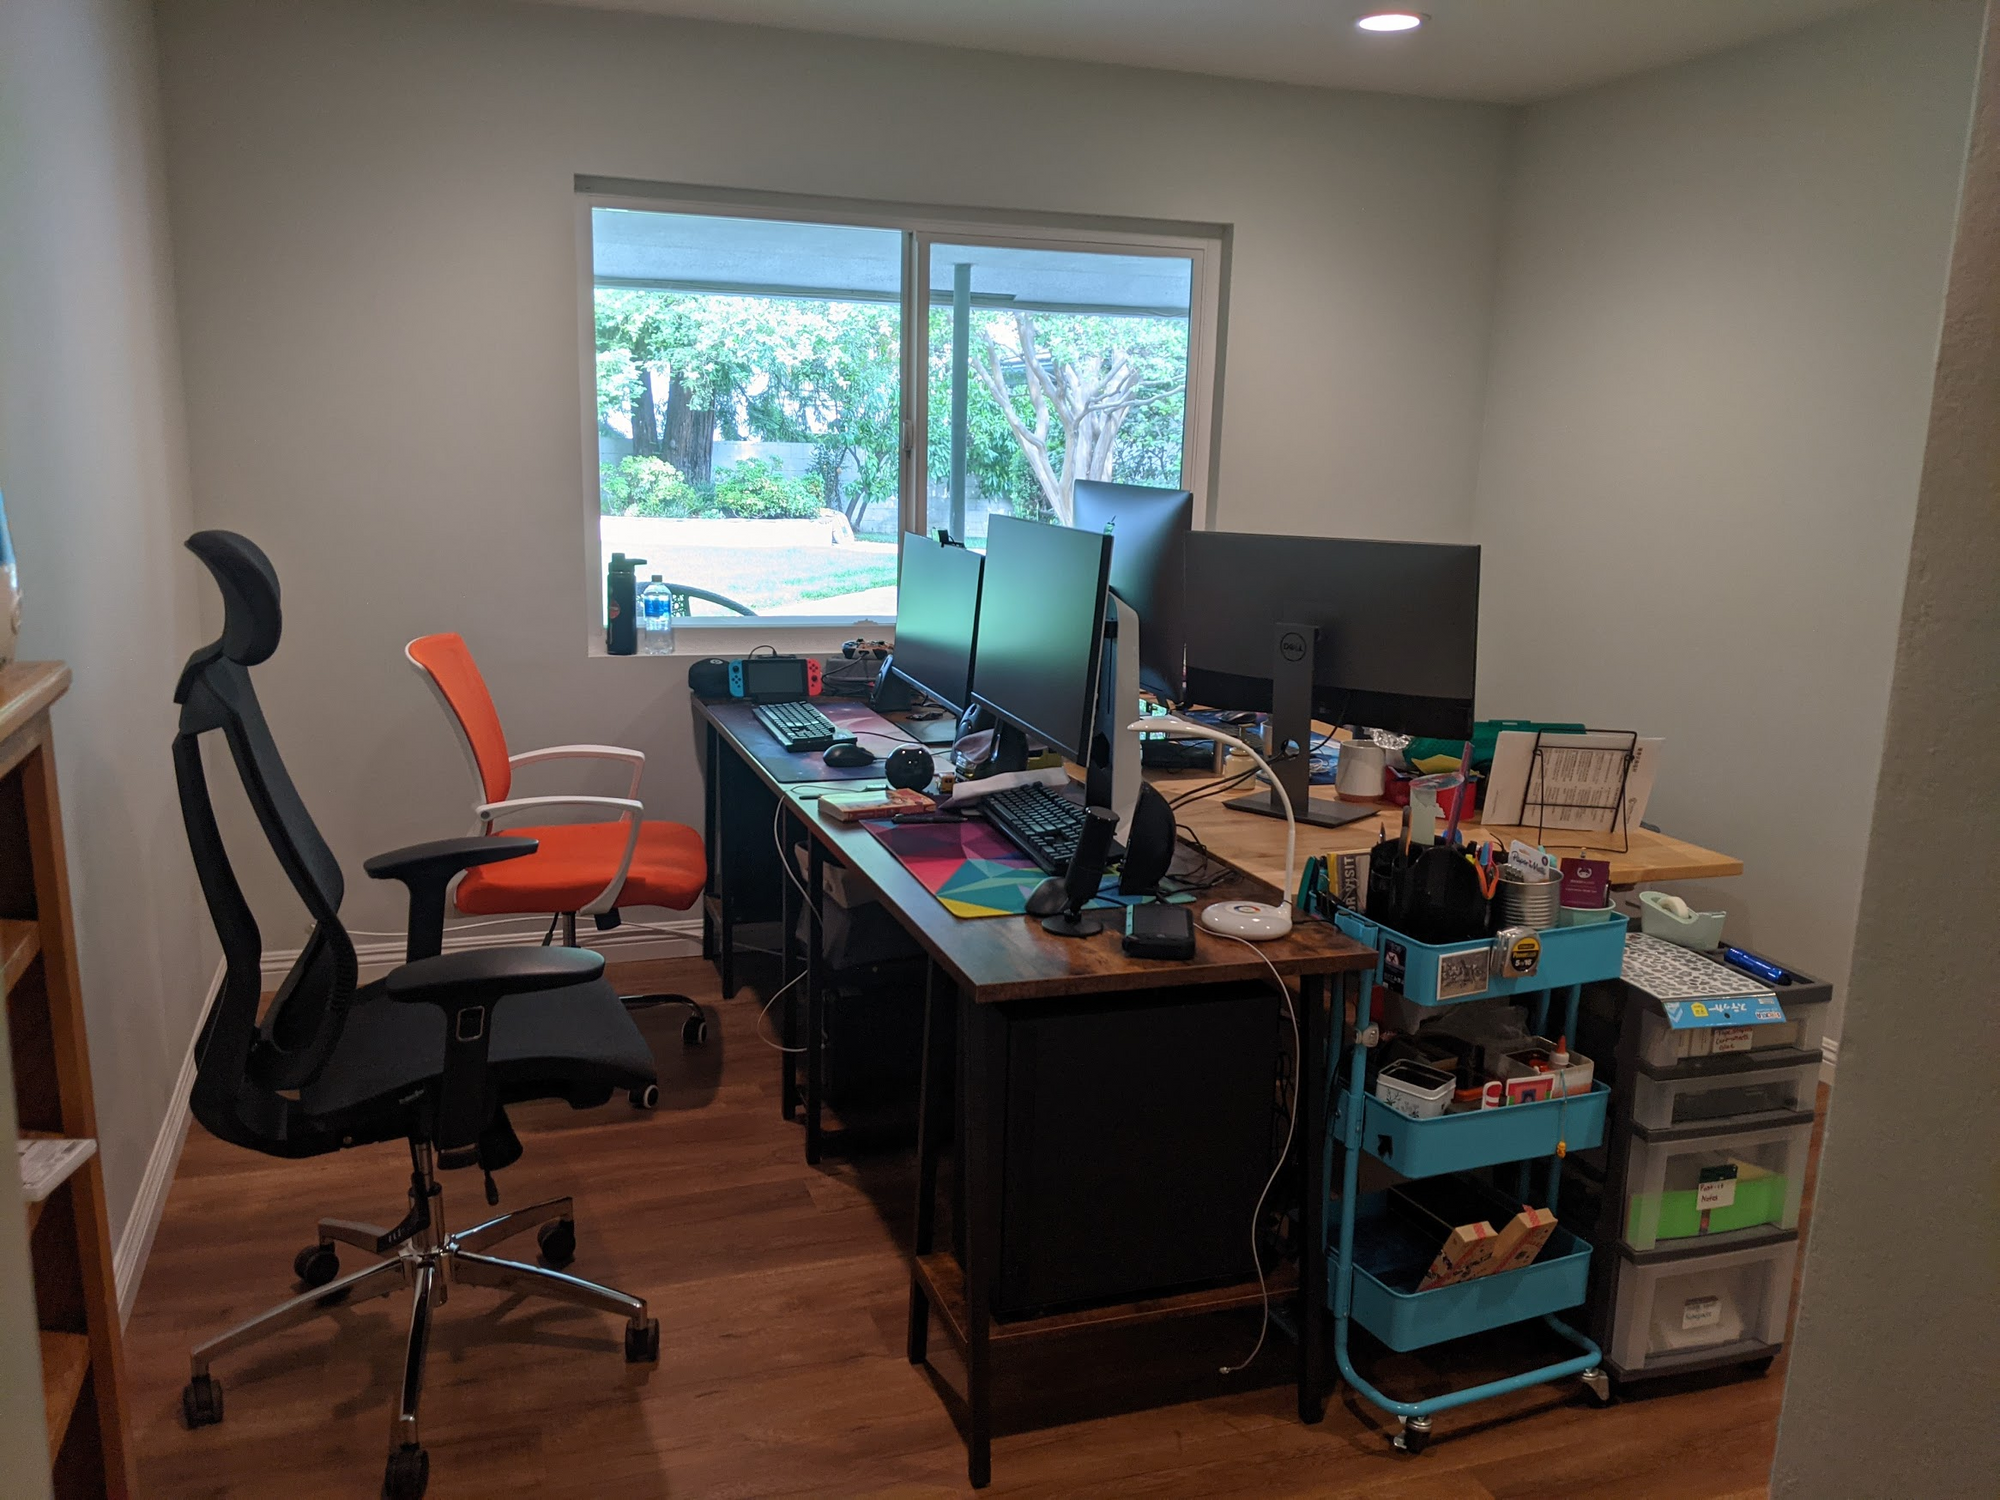 Computer desks across from each other with chairs and bench on either side